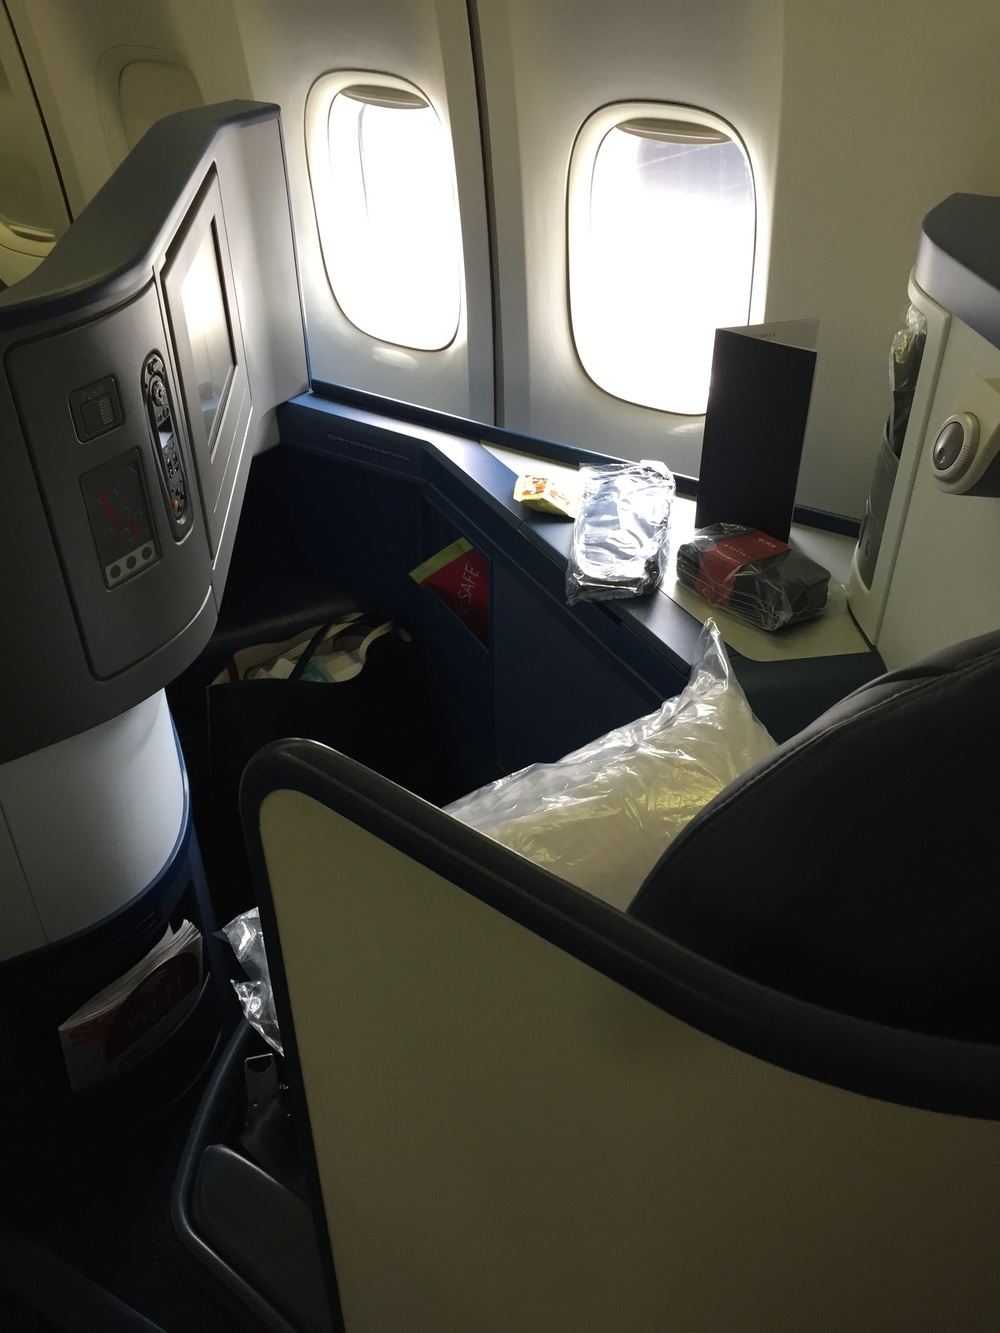 Business class on Delta is great. Good thing we have all those Amex miles!